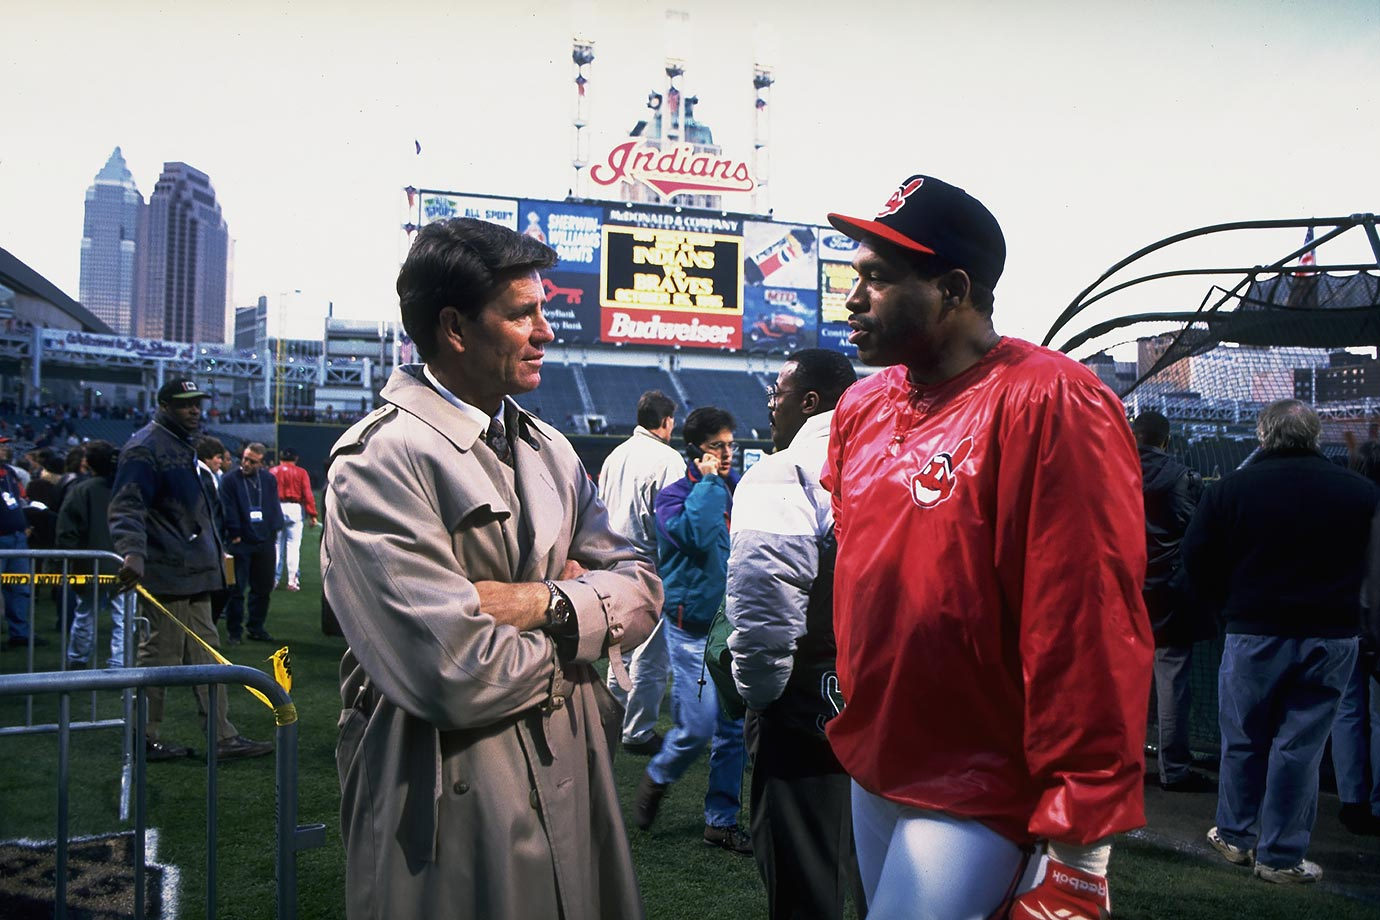 October 25, 1995 — World Series, Game 4 (Cleveland Indians vs. Baltimore Orioles)